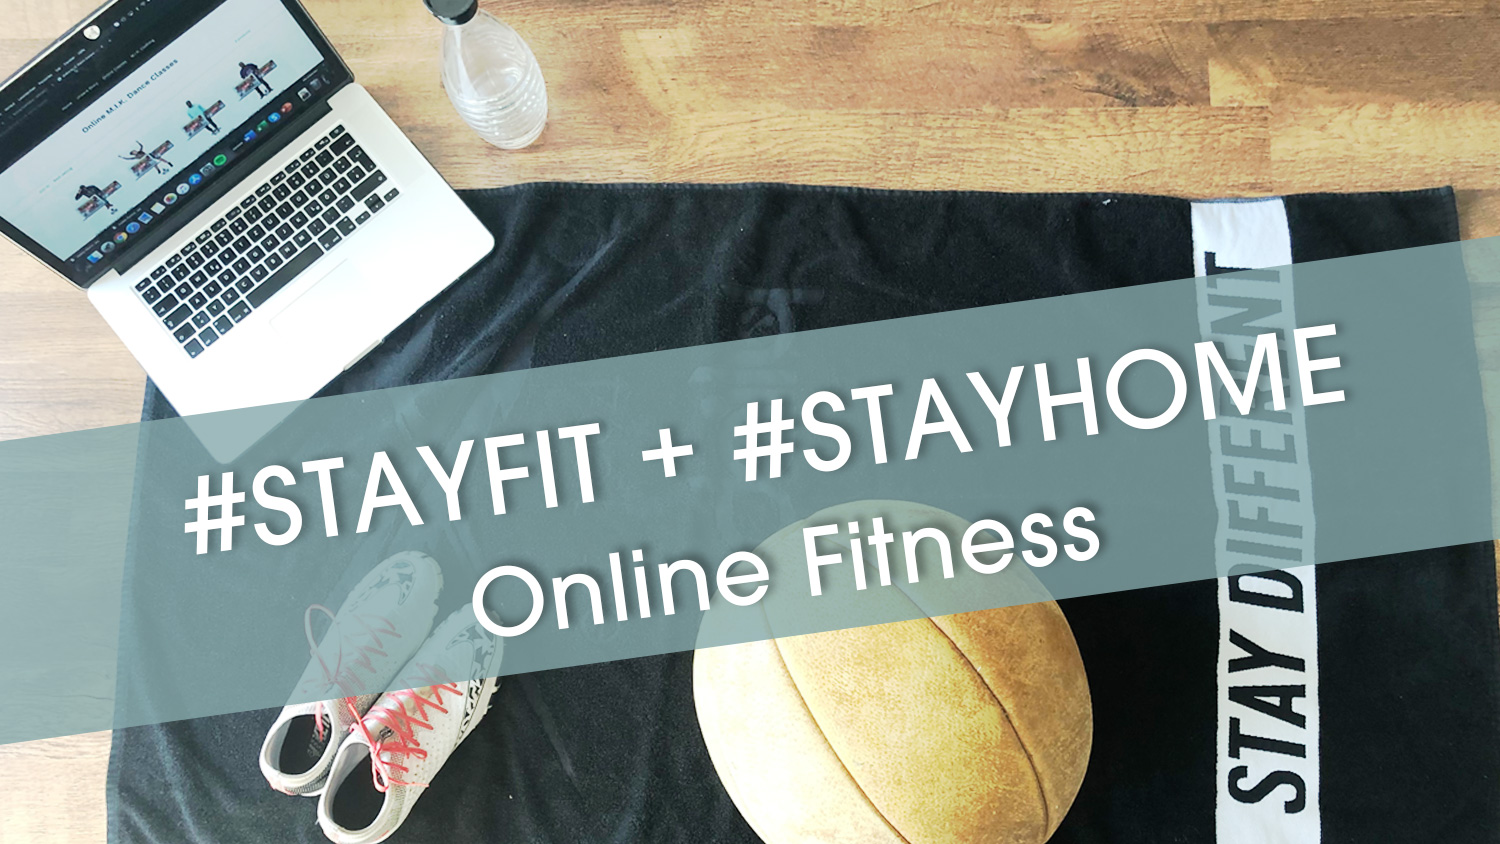 Stay fit + home